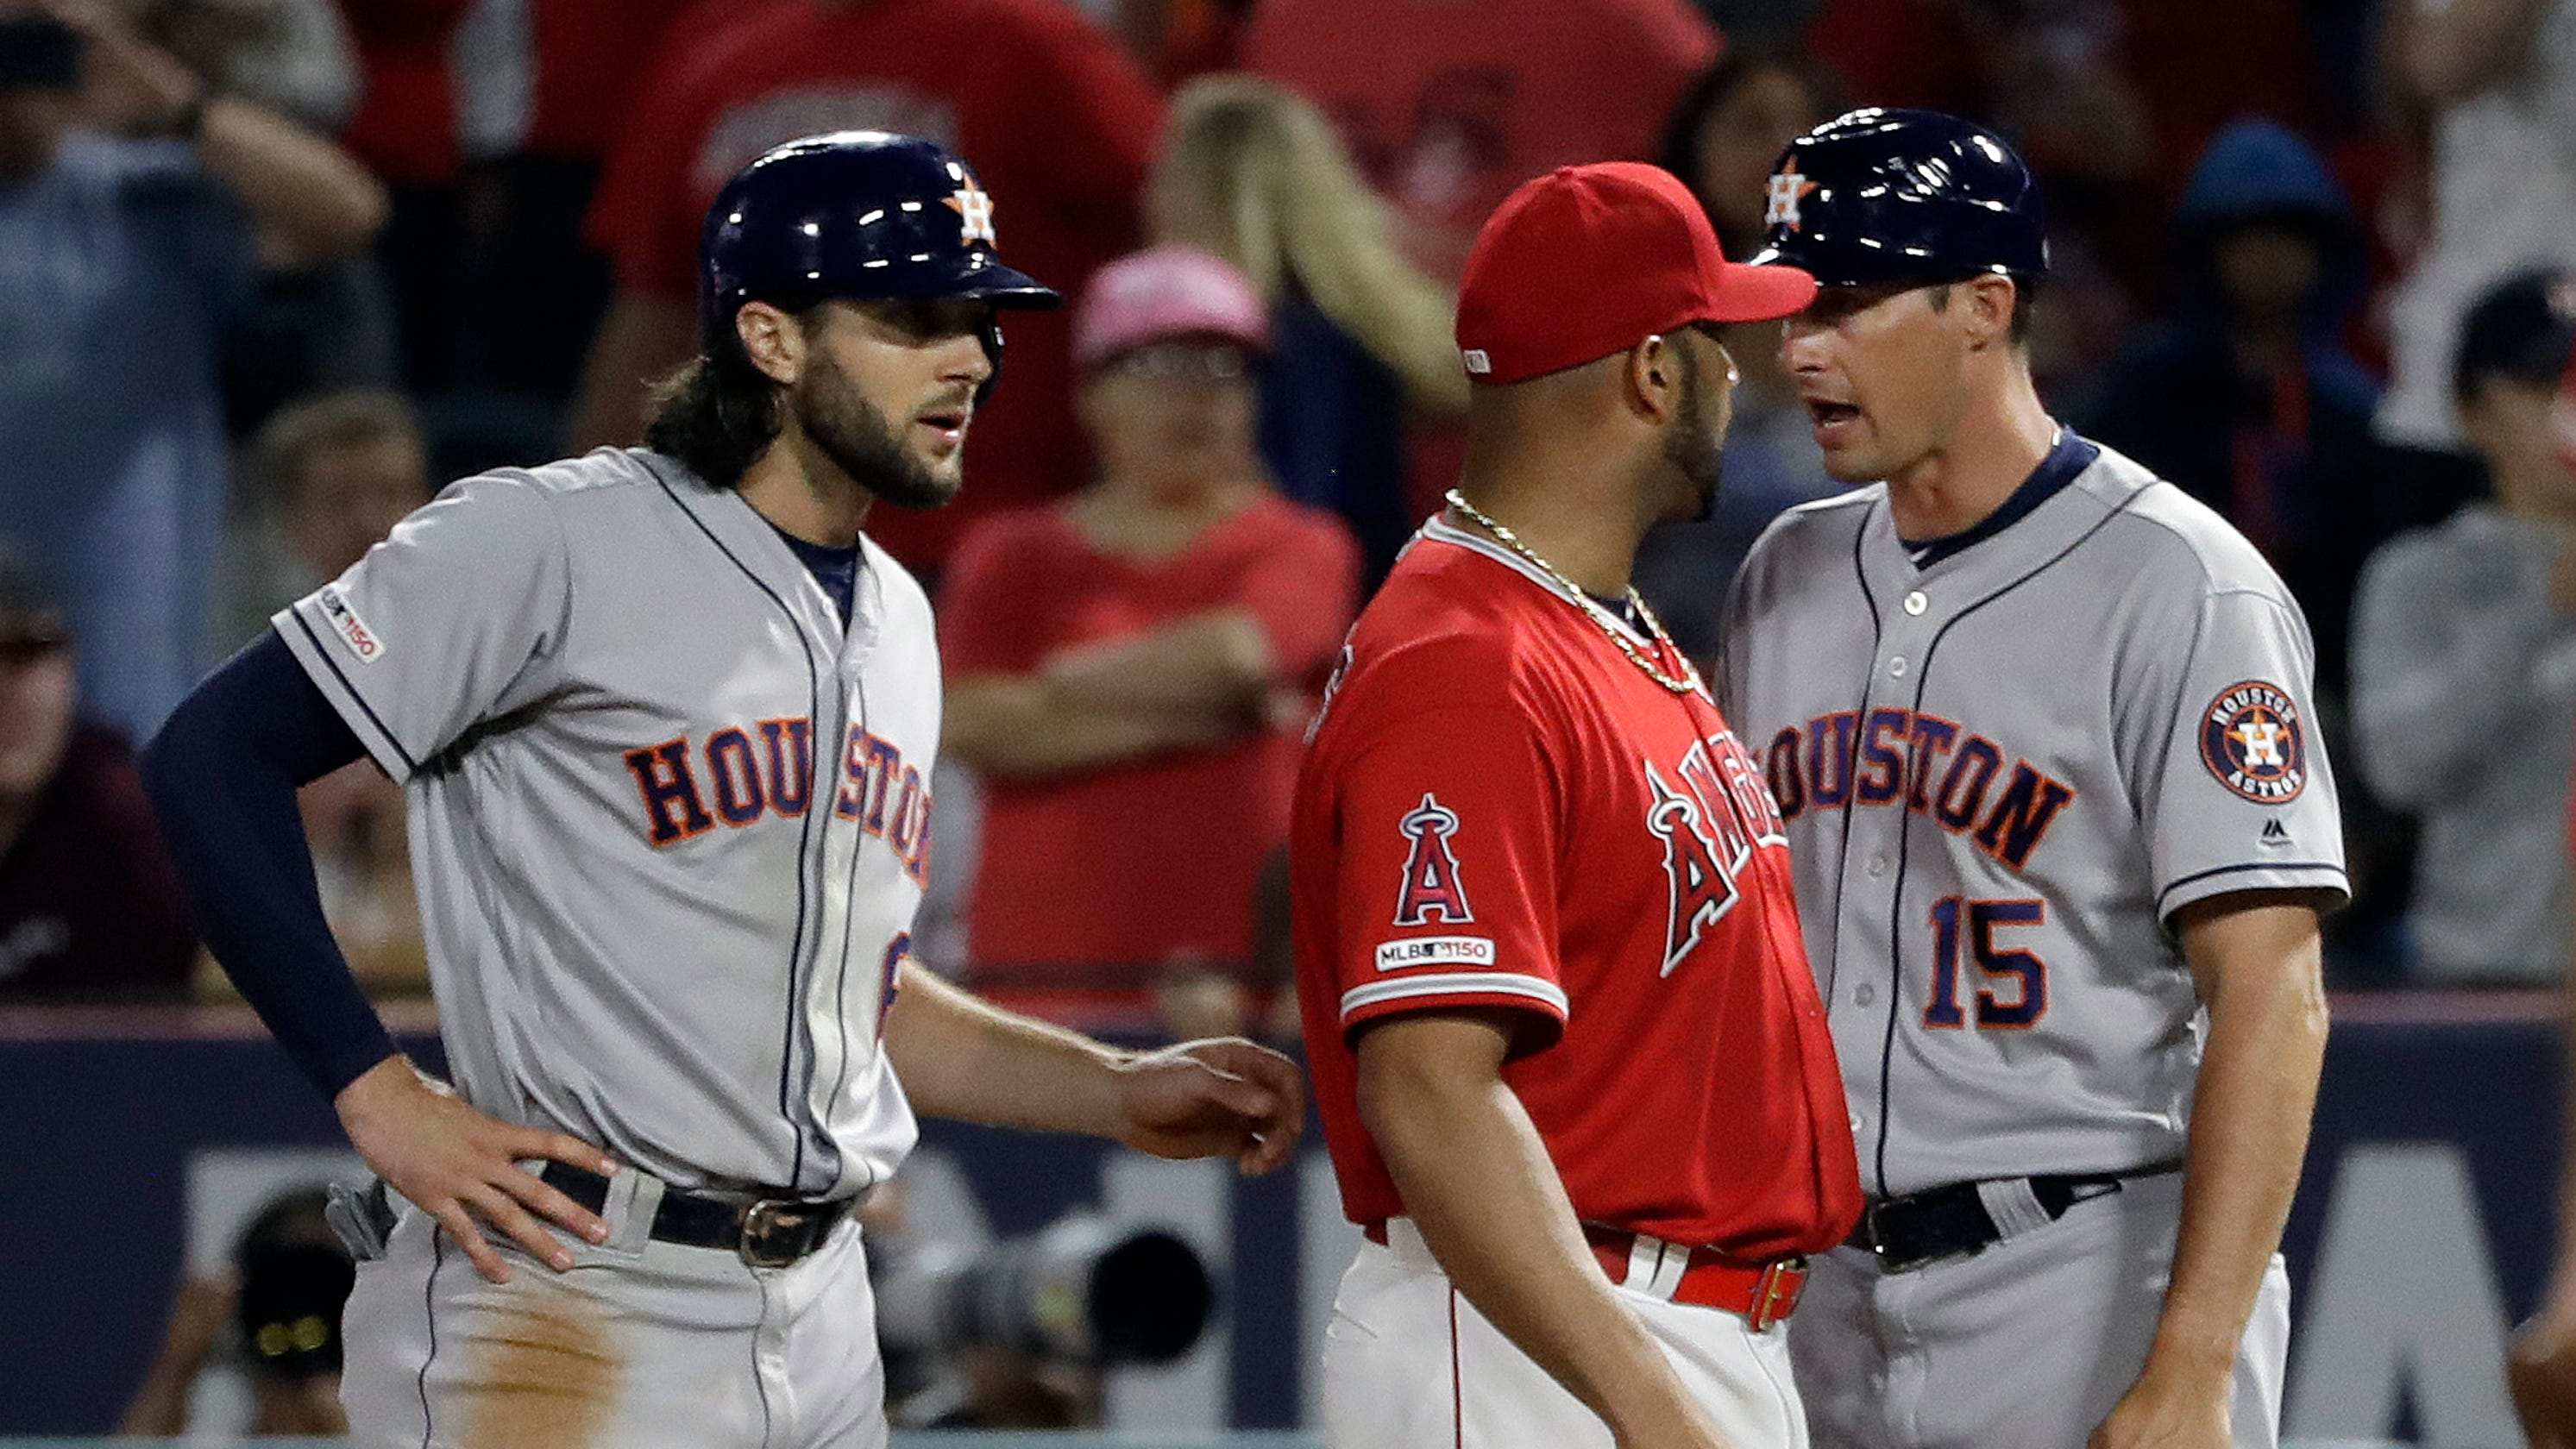 An Angels pitcher says he accidentally hit Jake Marisnick. A.J. Hinch says it was 'a free shot'